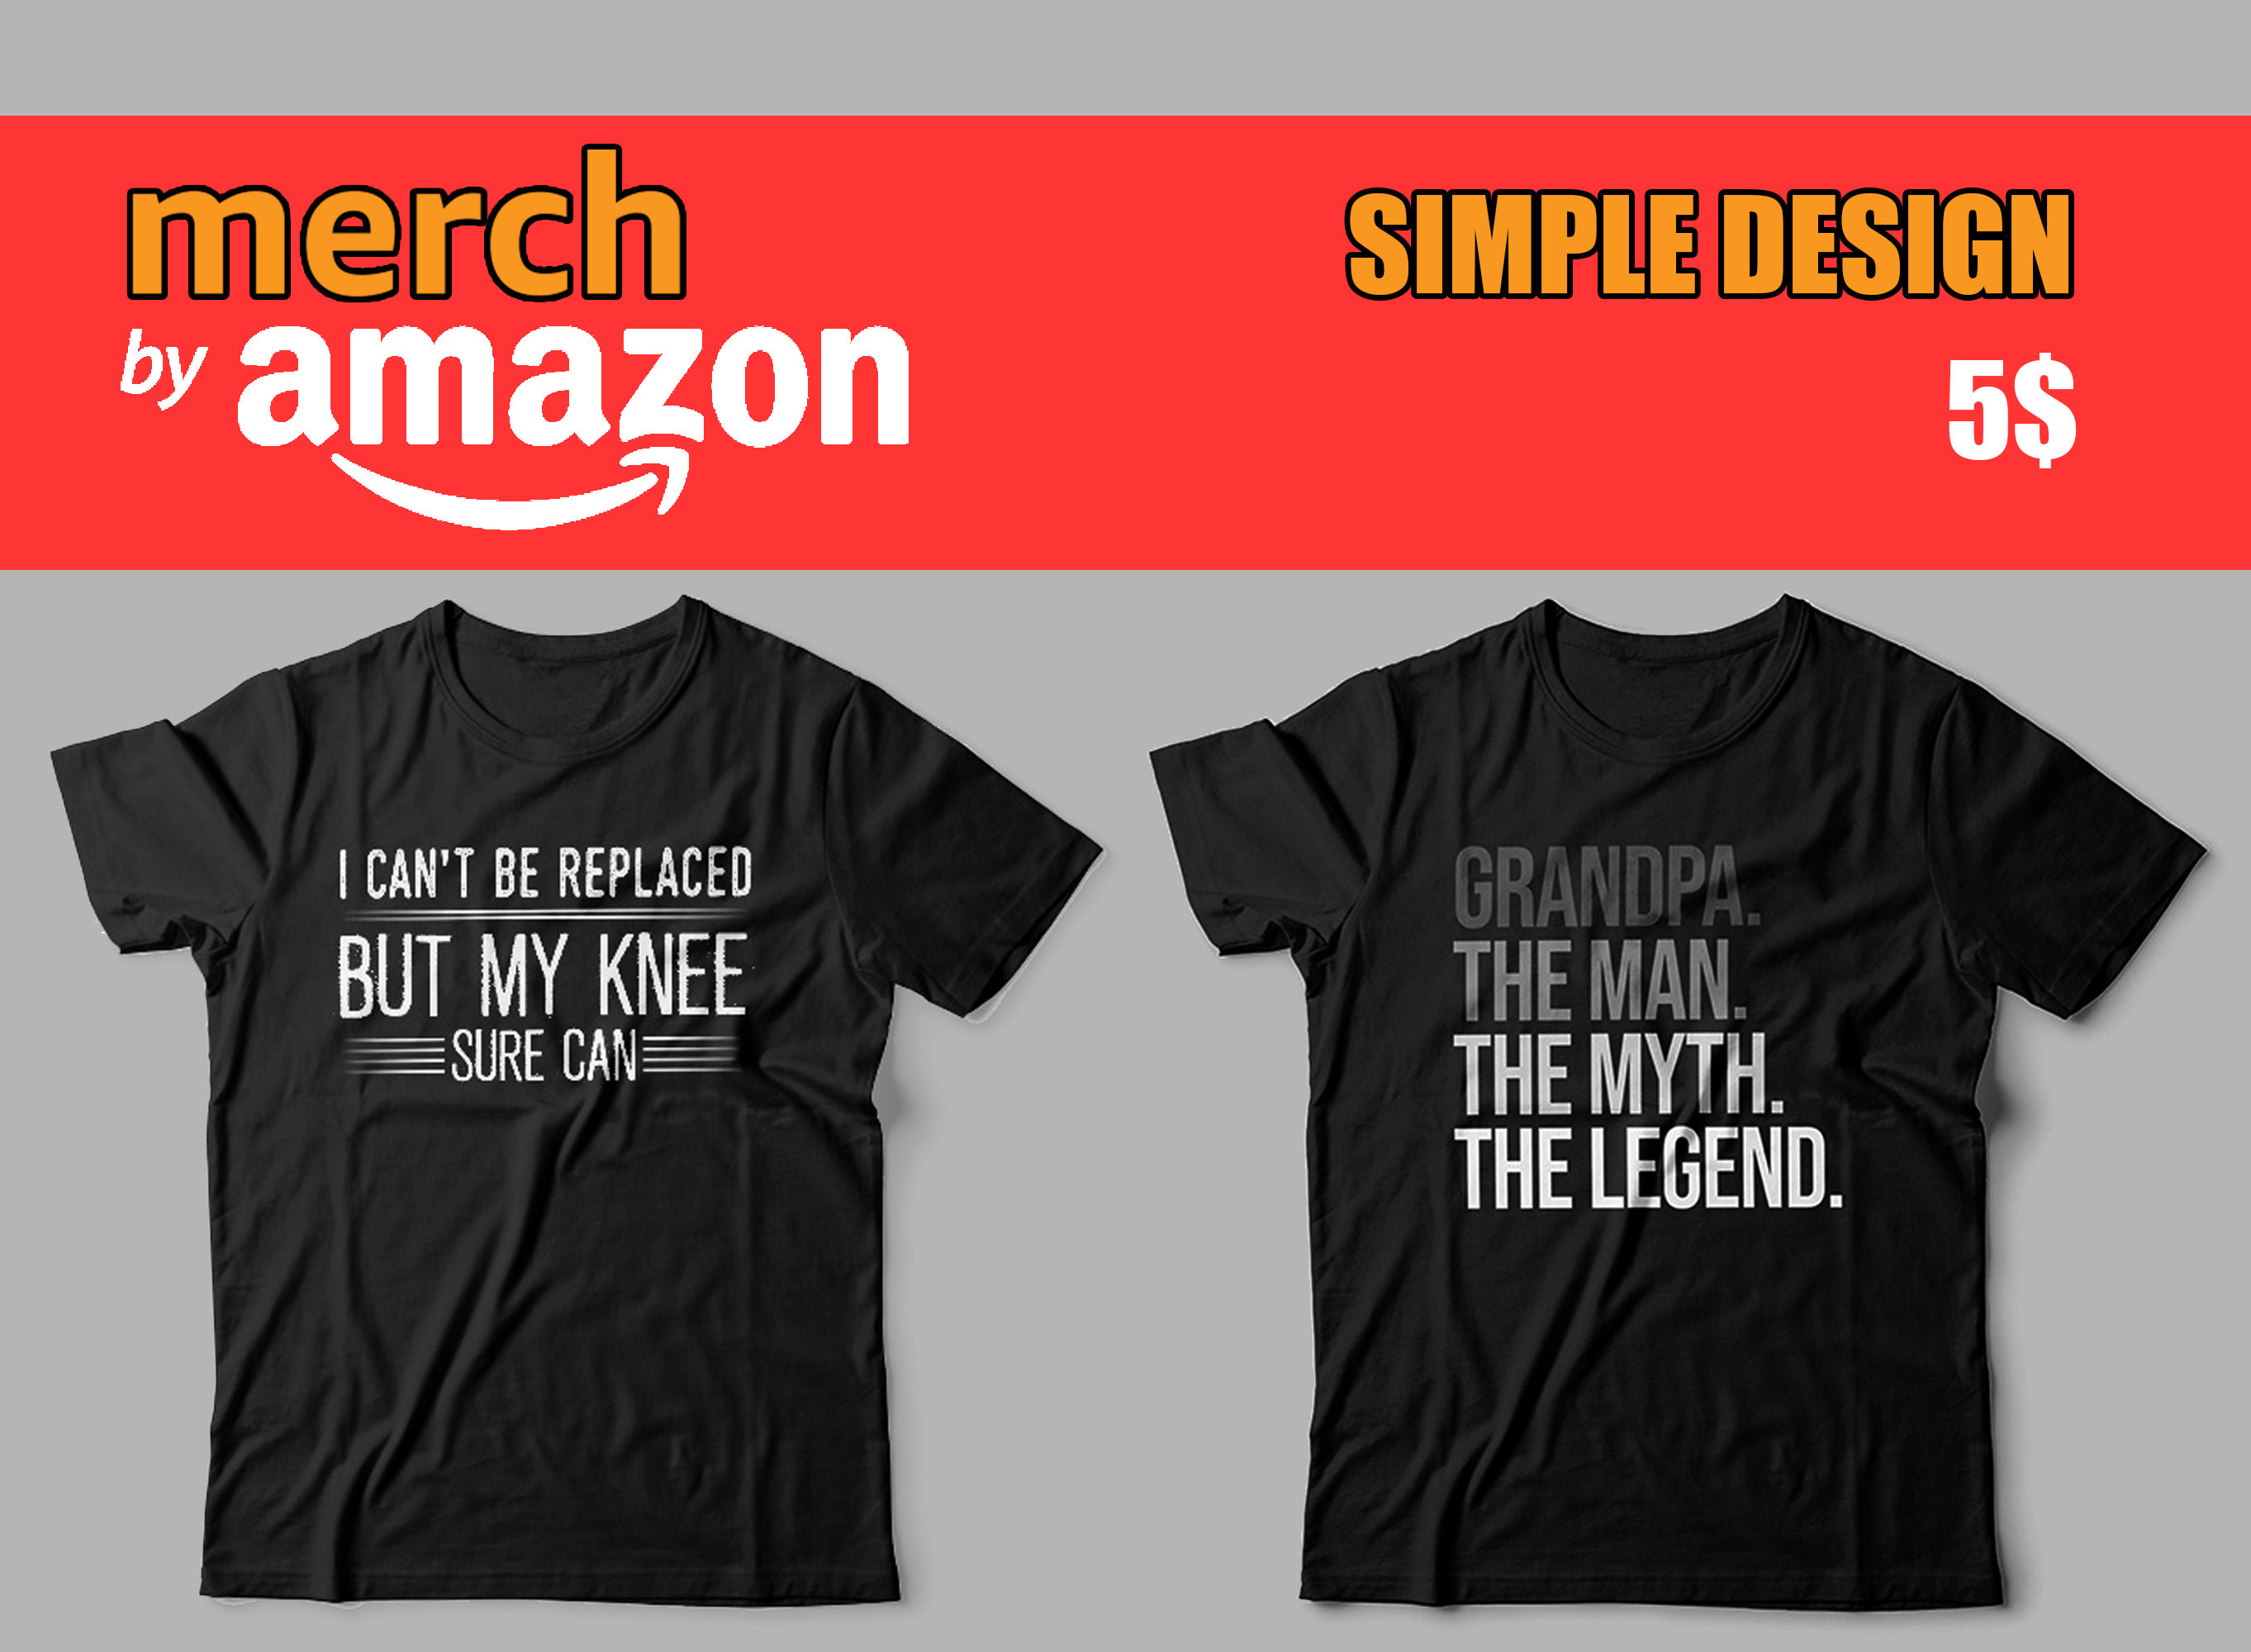 Design Your Shirt Idea For Merch By Amazon By Hansonmal